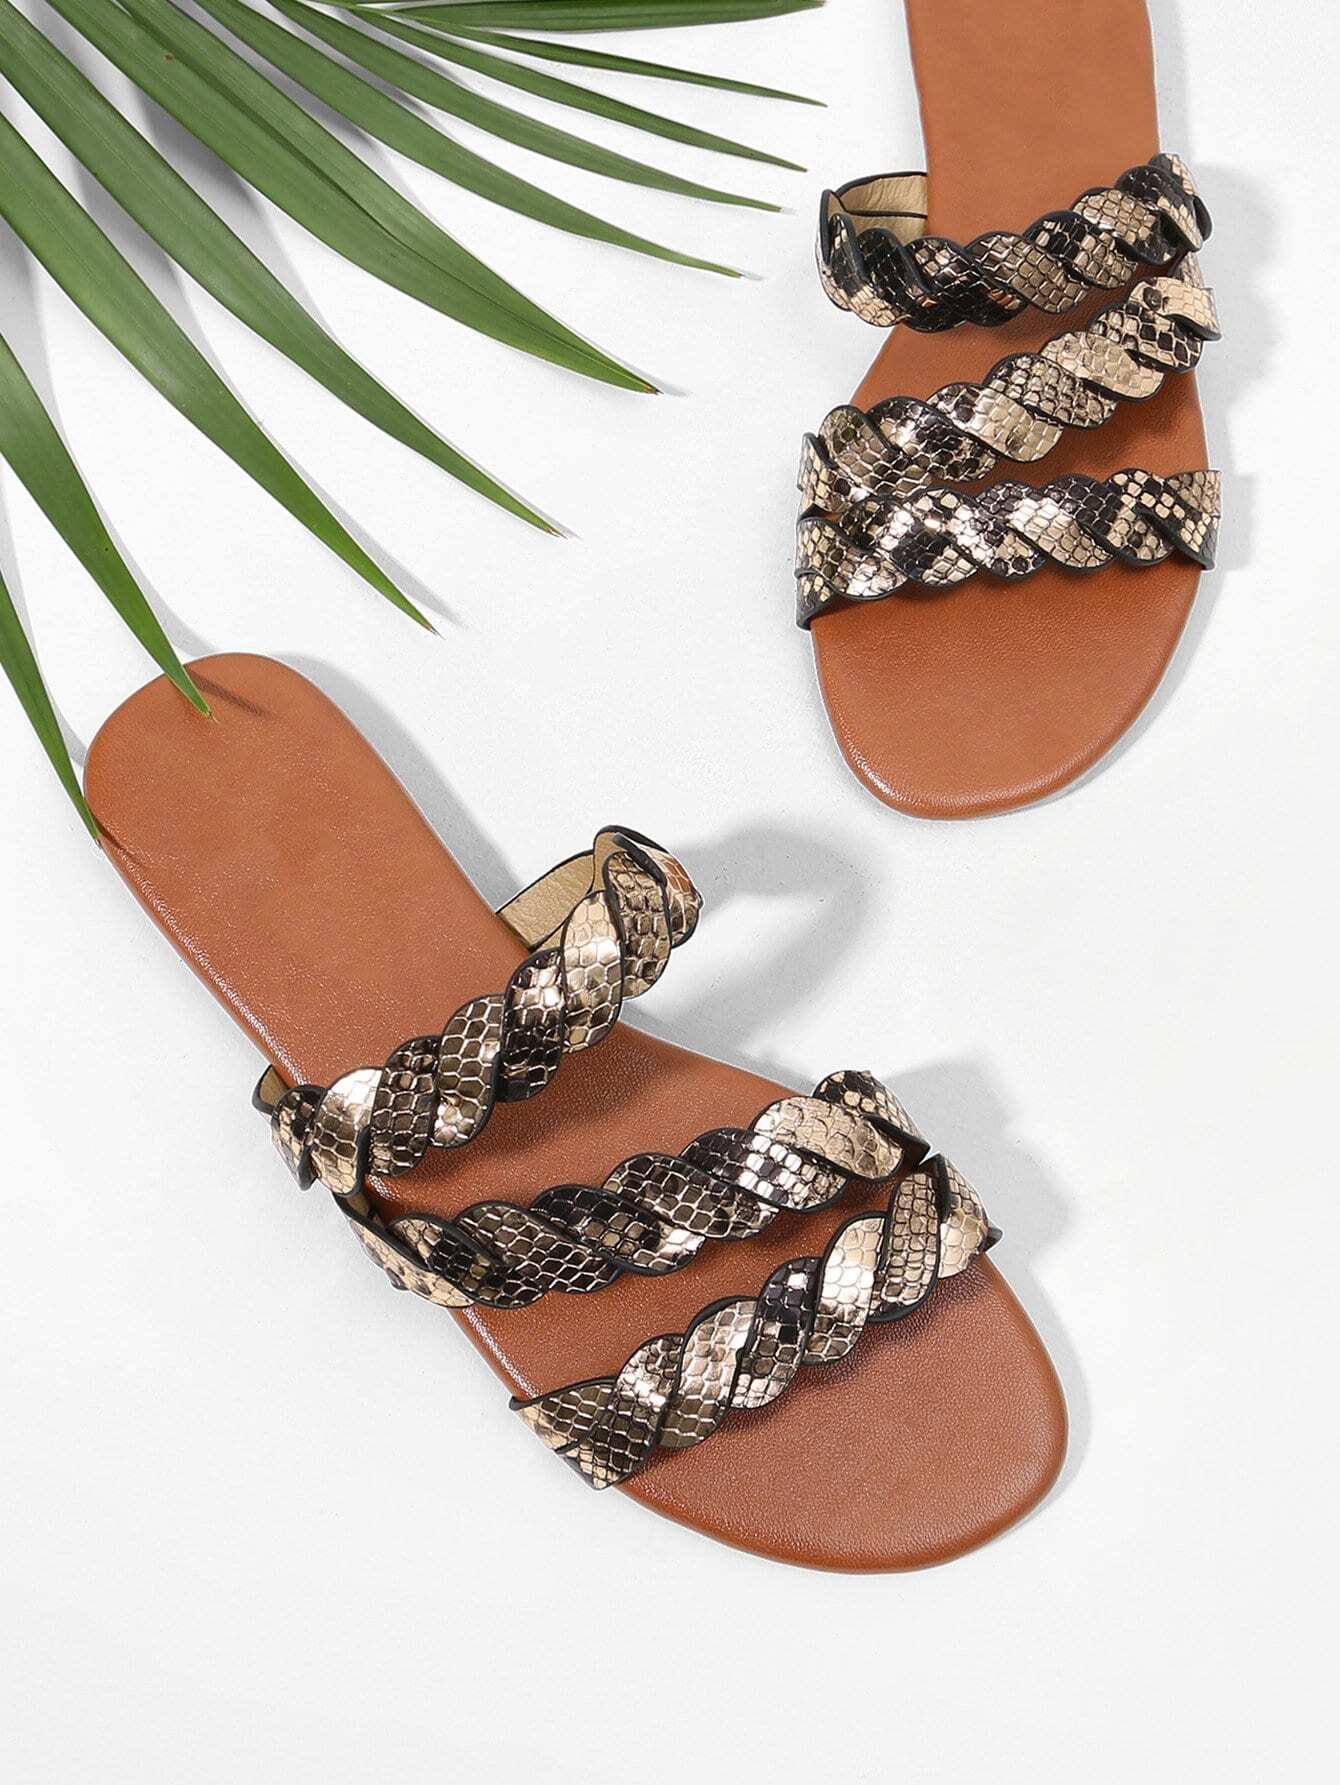 Woven Design PU Flat Sandals woven design straw flat sandals